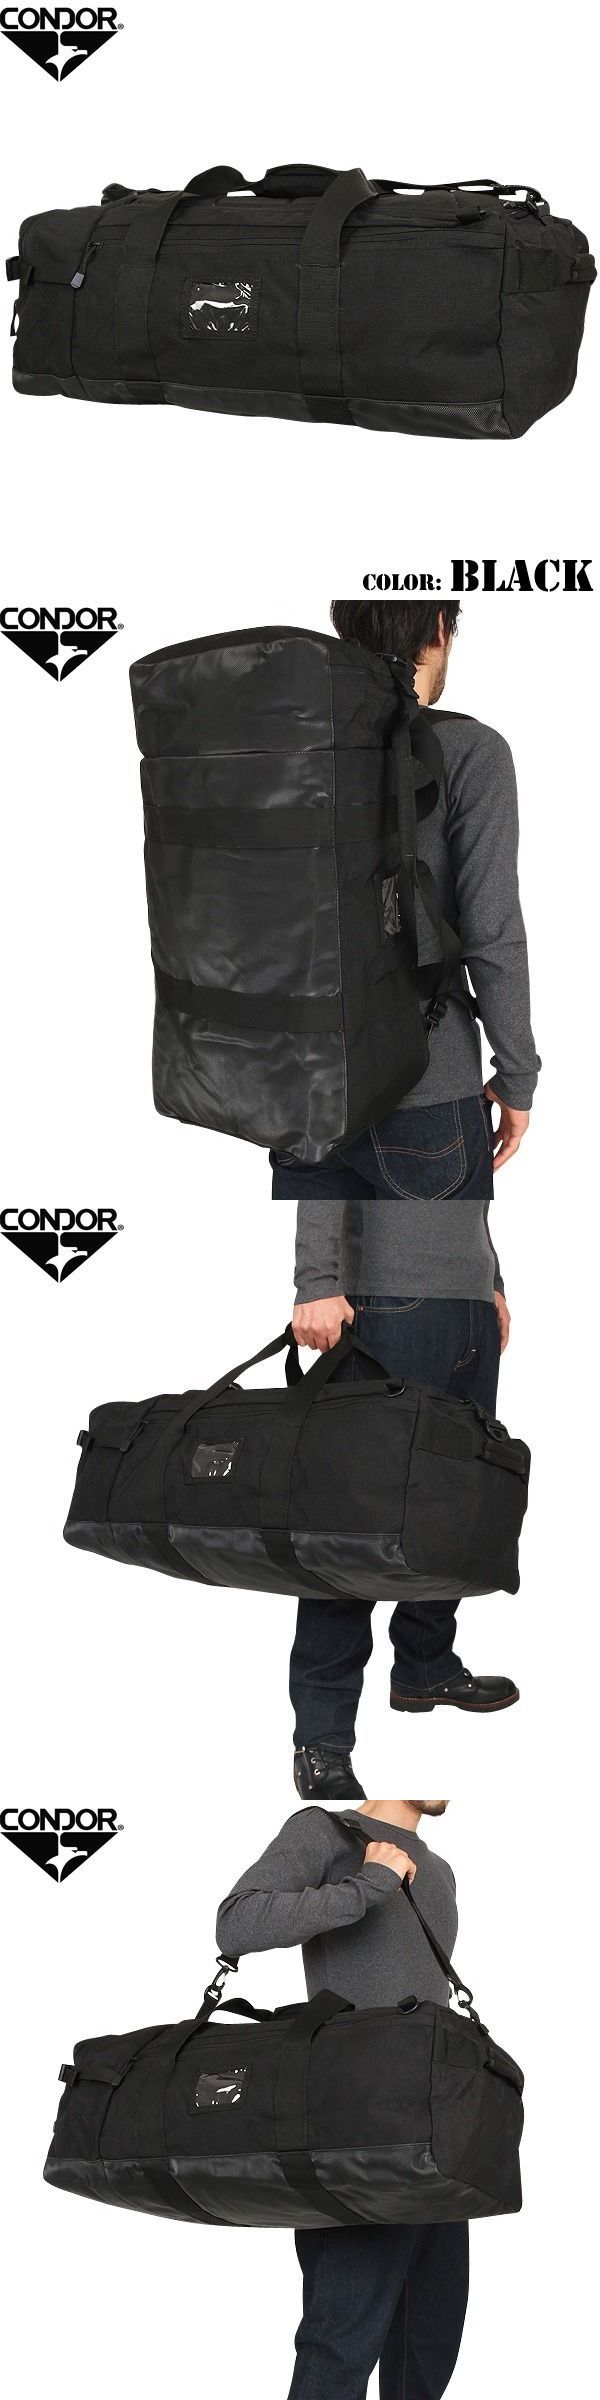 Hunting Bags and Packs 52503: Condor 161 Black Colossus Tactical Duffle Bag Backpack Shoulder Bag -> BUY IT NOW ONLY: $59.55 on eBay!